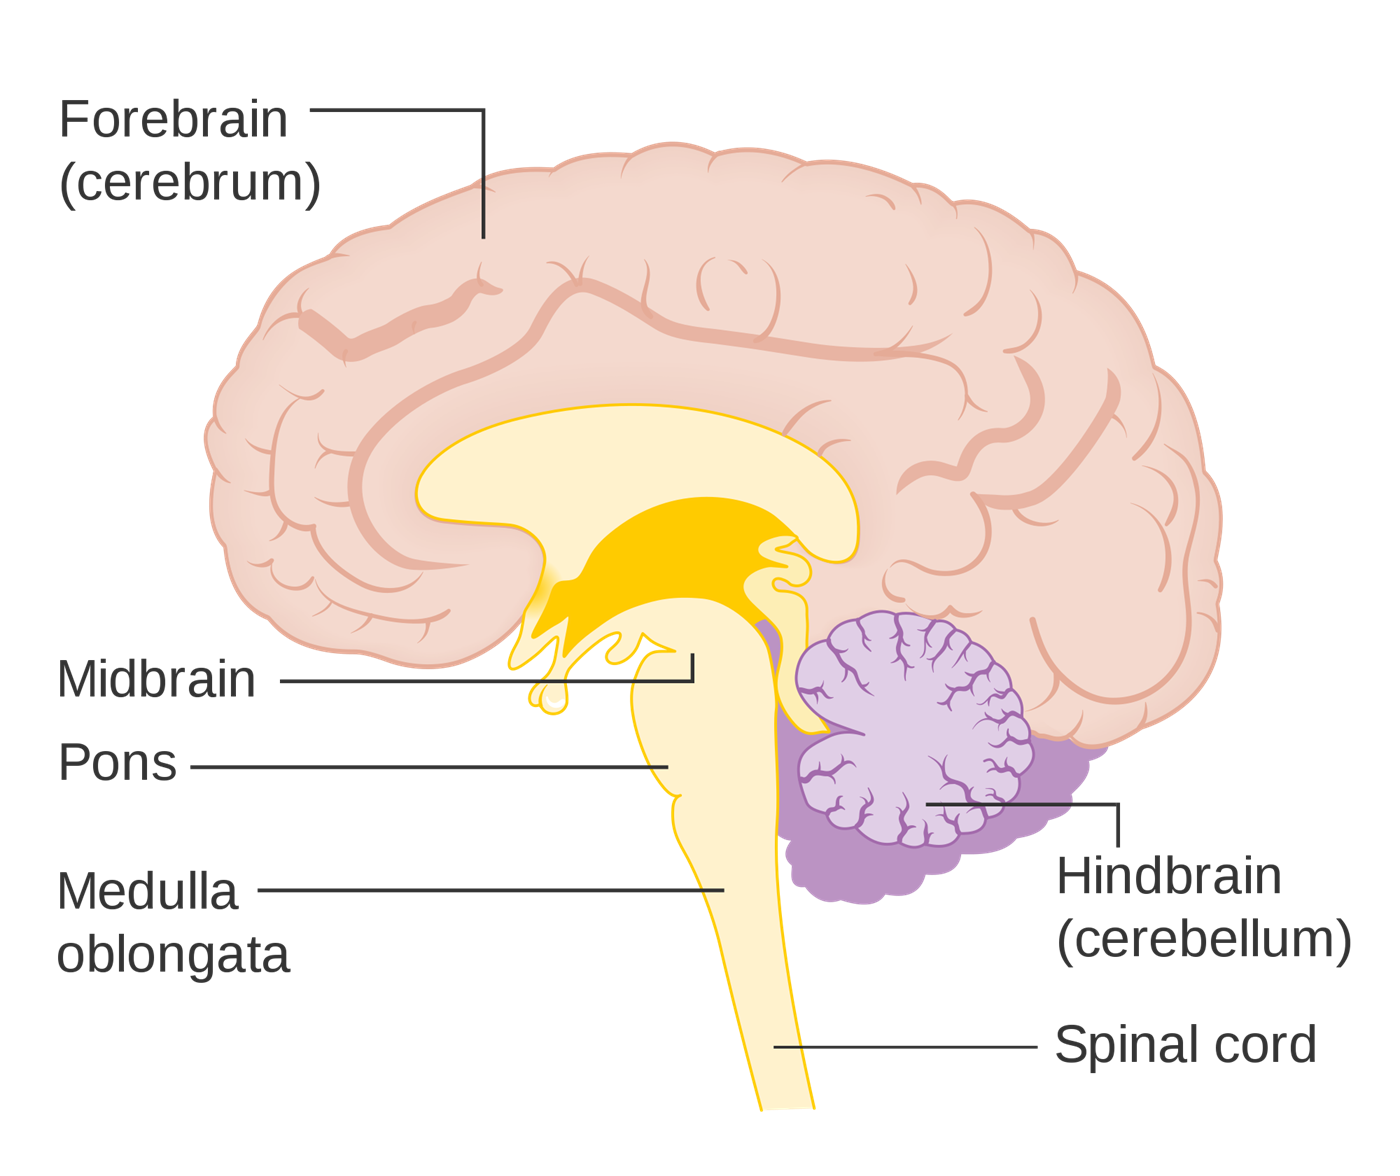 Cerebrum And Cerebellum Diagram - DIY Wiring Diagrams •